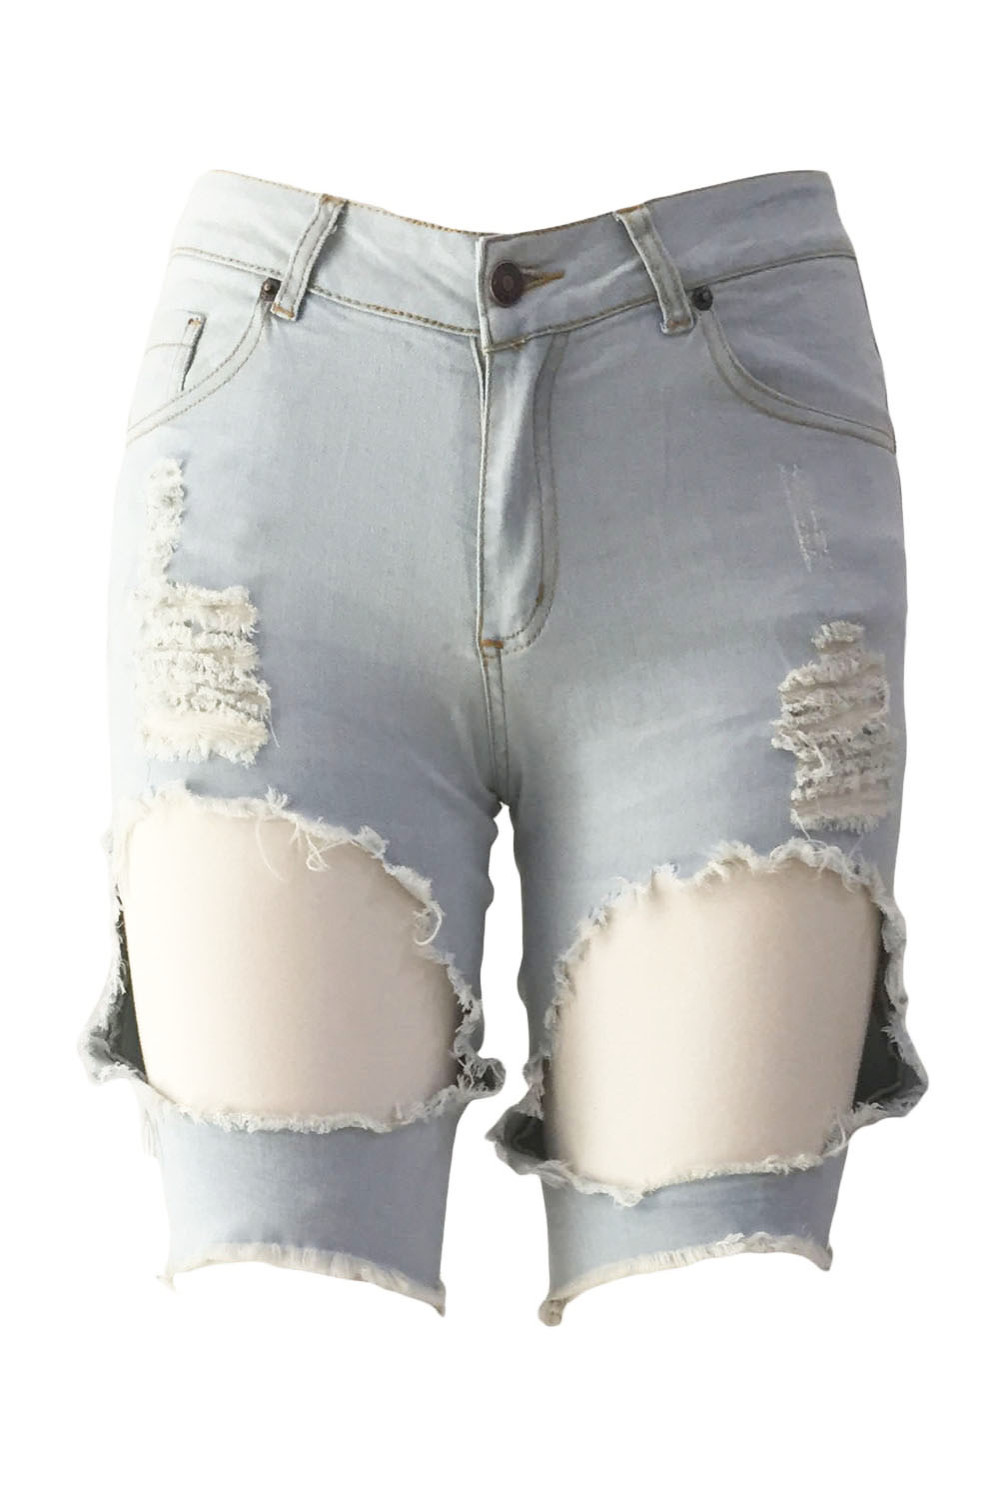 Tint-Blue-Destroyed-Cutoff-Bermuda-Shorts-LC78657-4-3